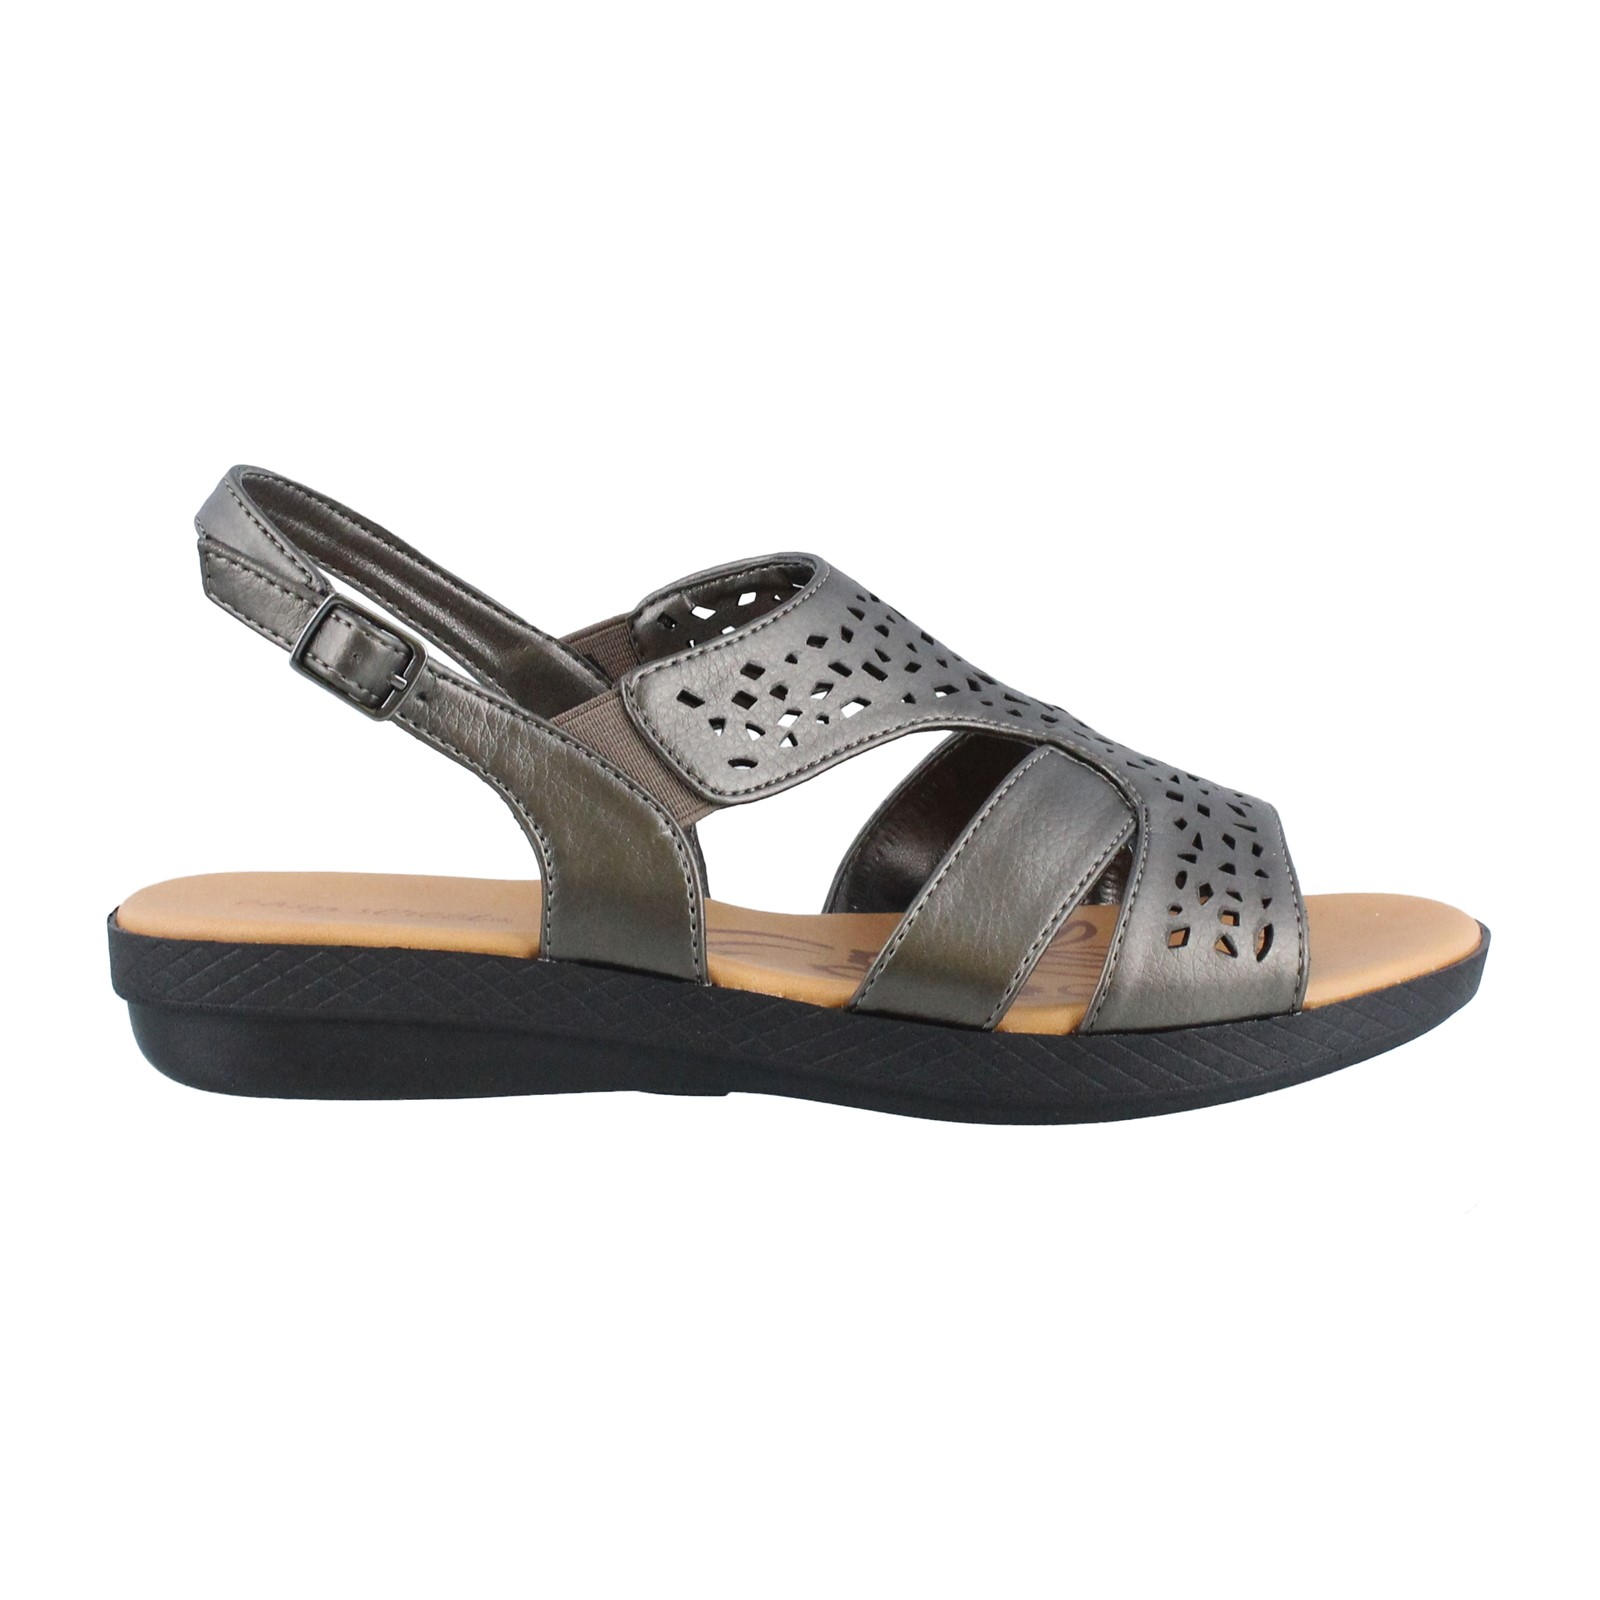 Women's Easy Street, Bolt Sandals